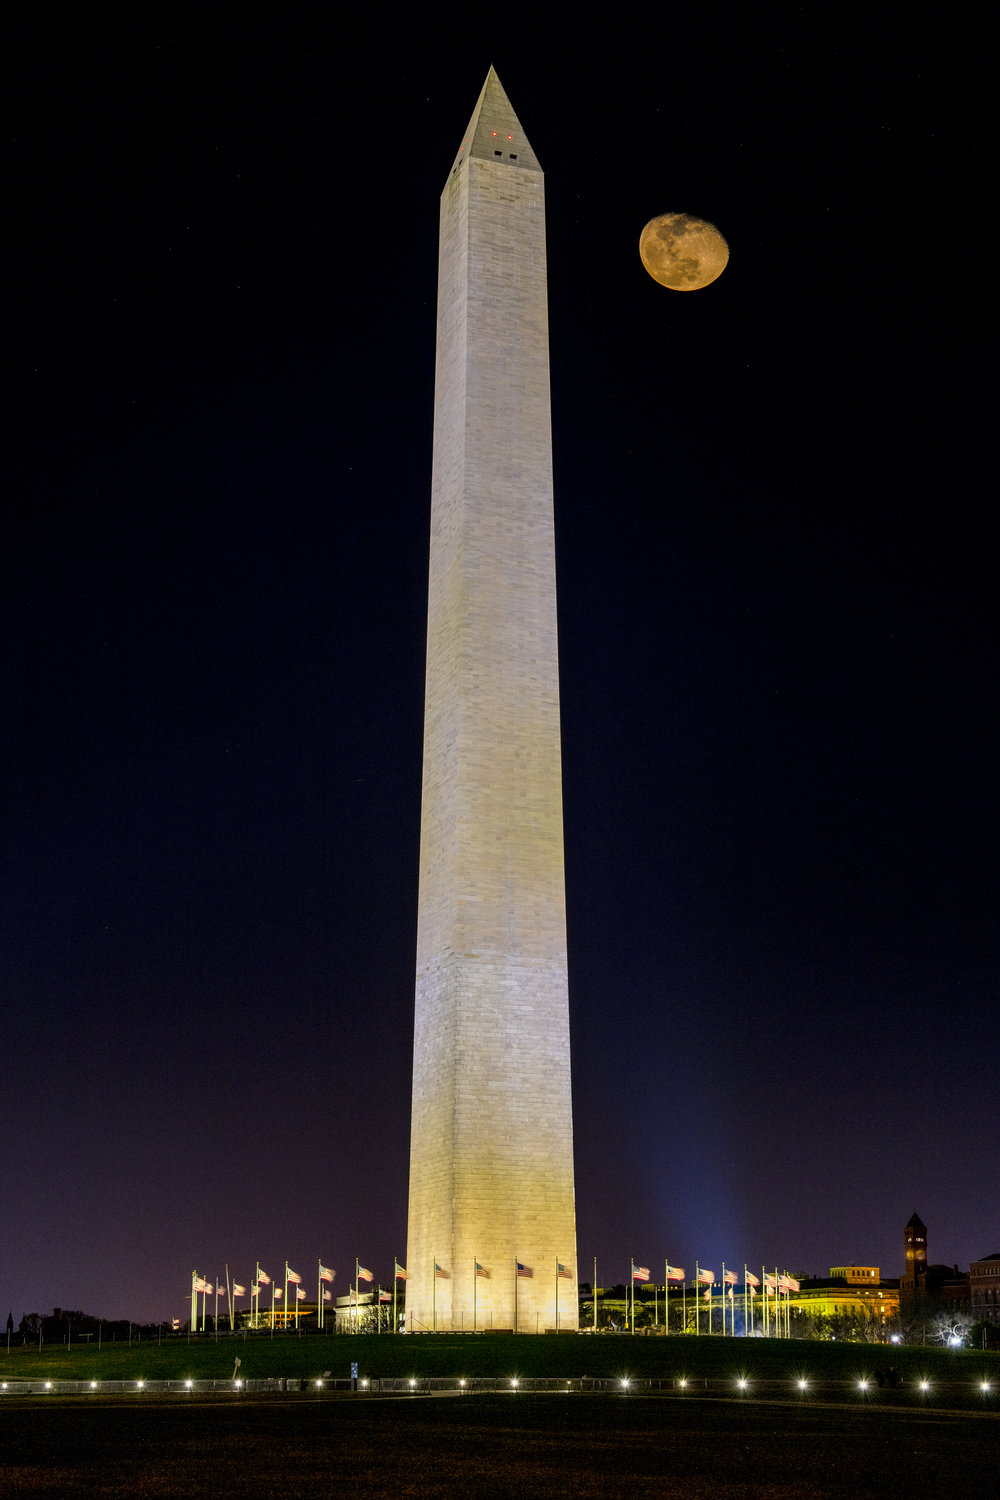 Moonrise over the Washington Monument, March 2018